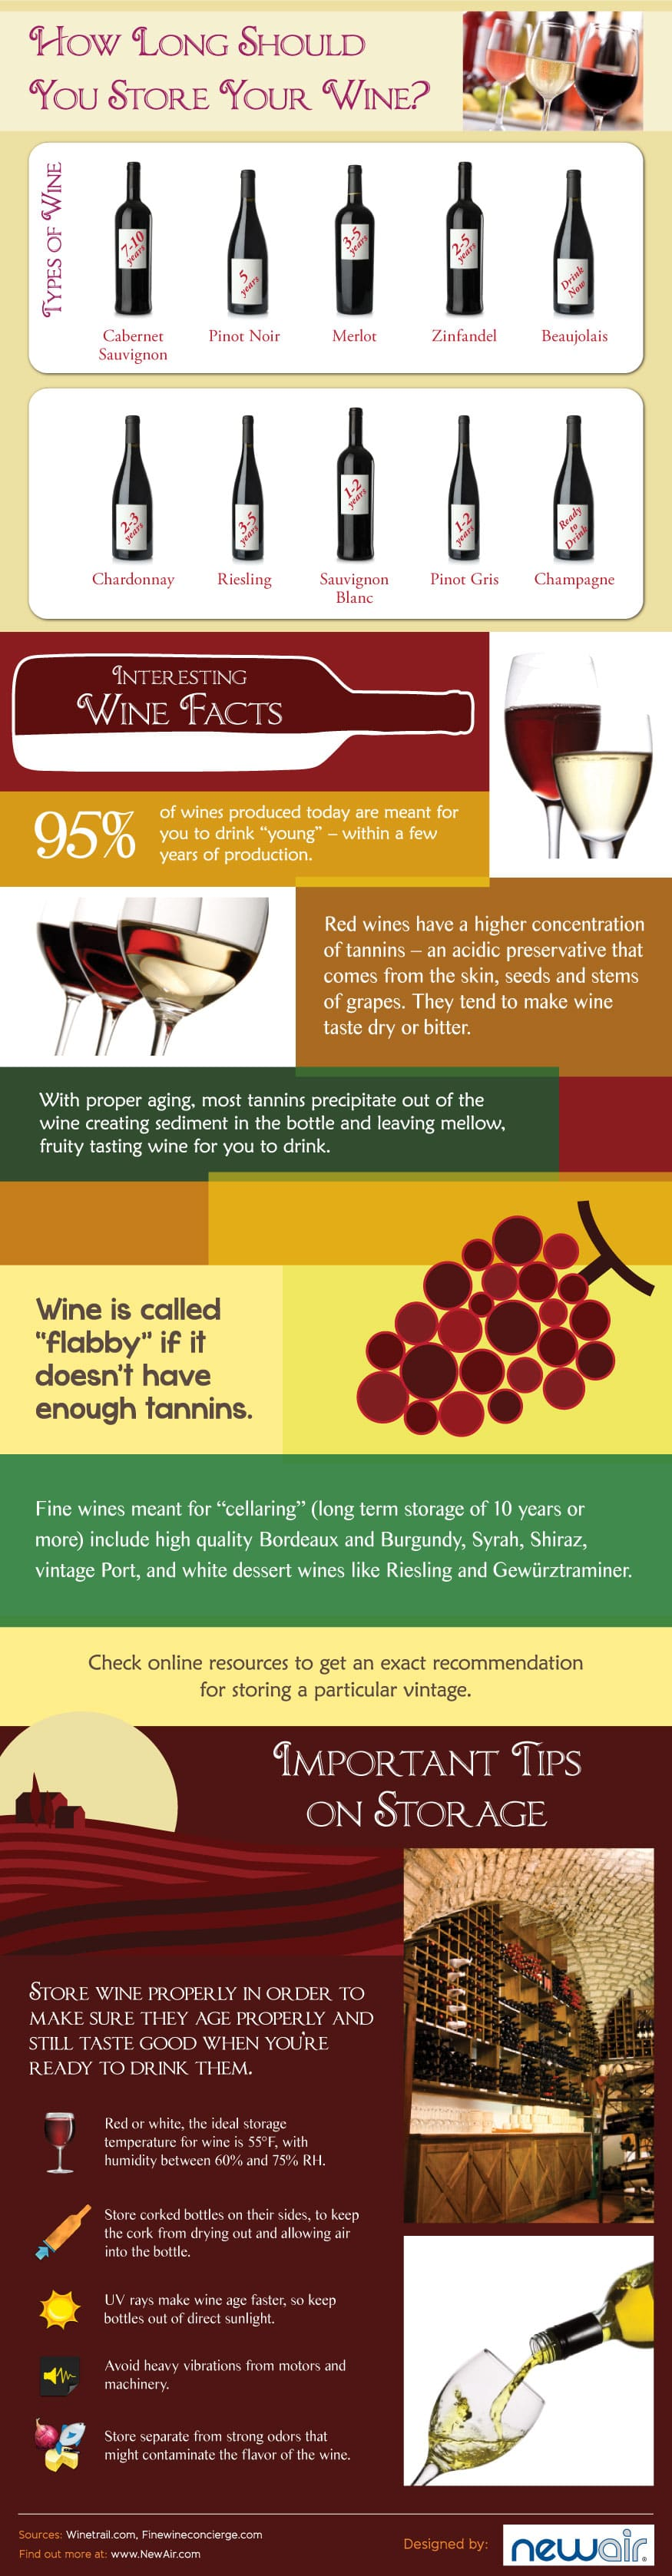 how long should you store your wine